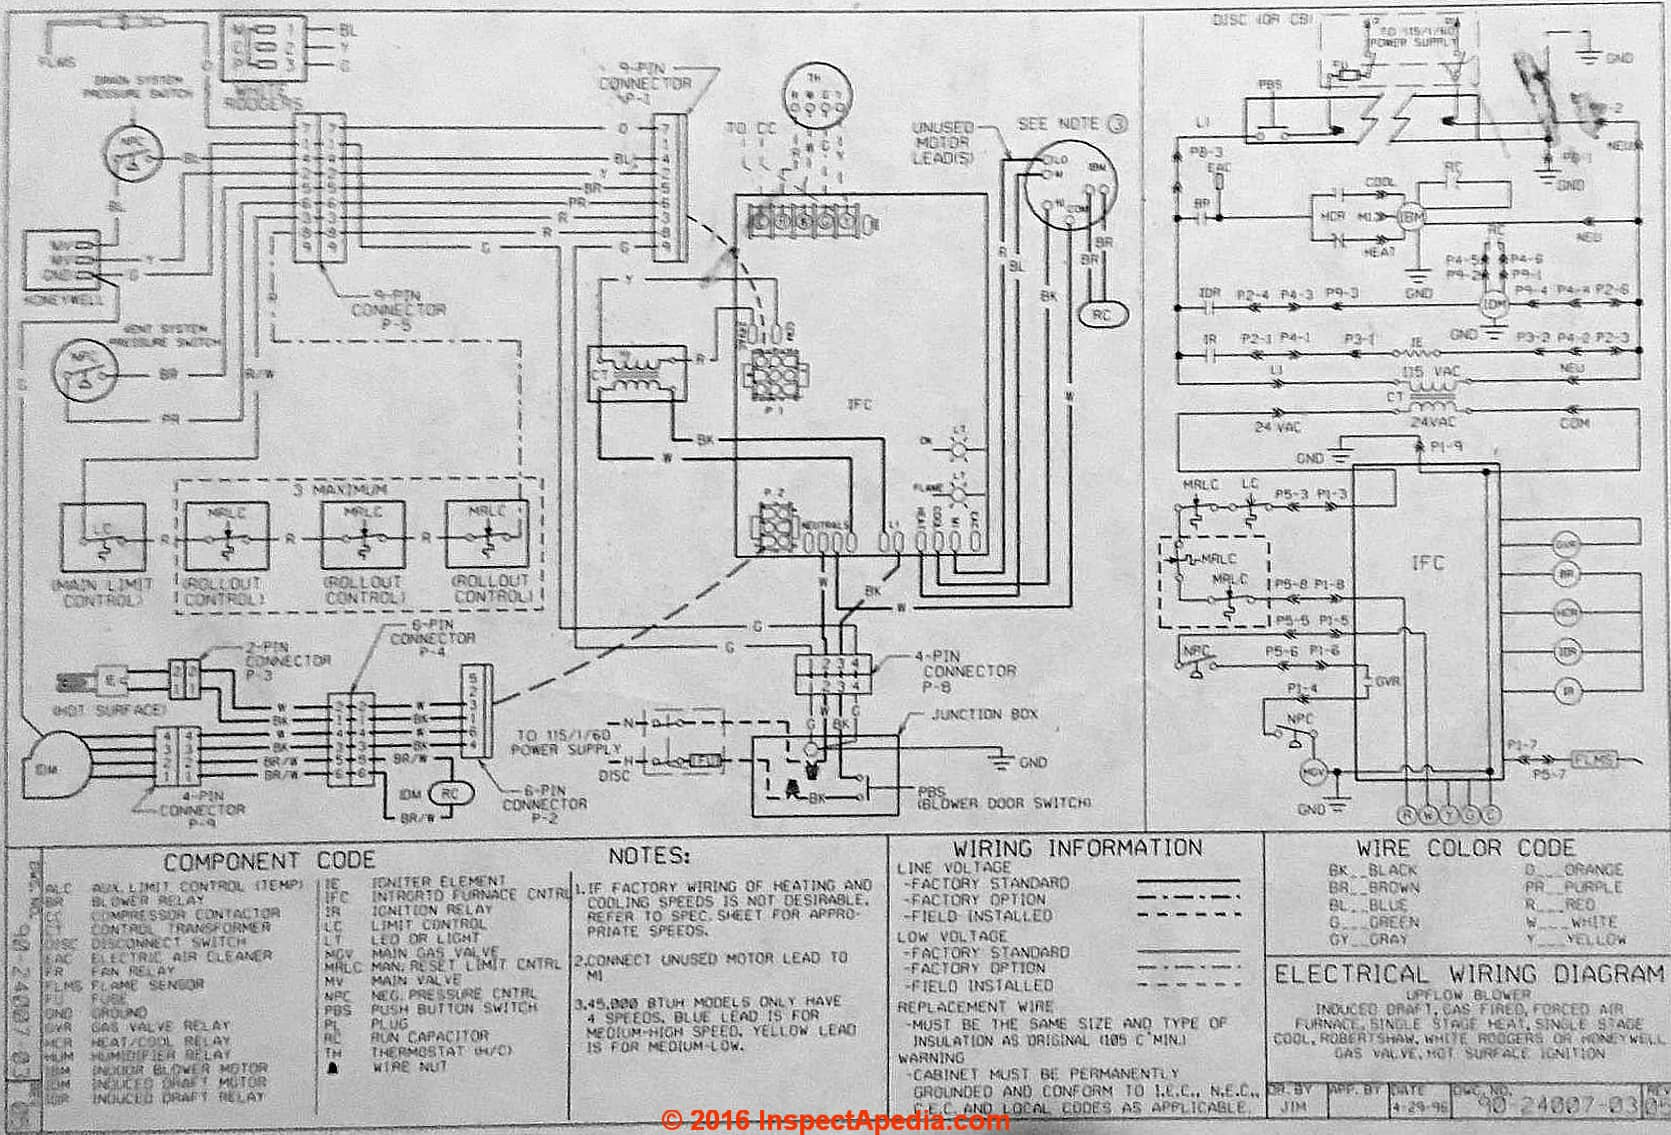 Split Air Conditioner Wiring Diagram Will Be A Thing Schematic Swift Gti Images Gallery